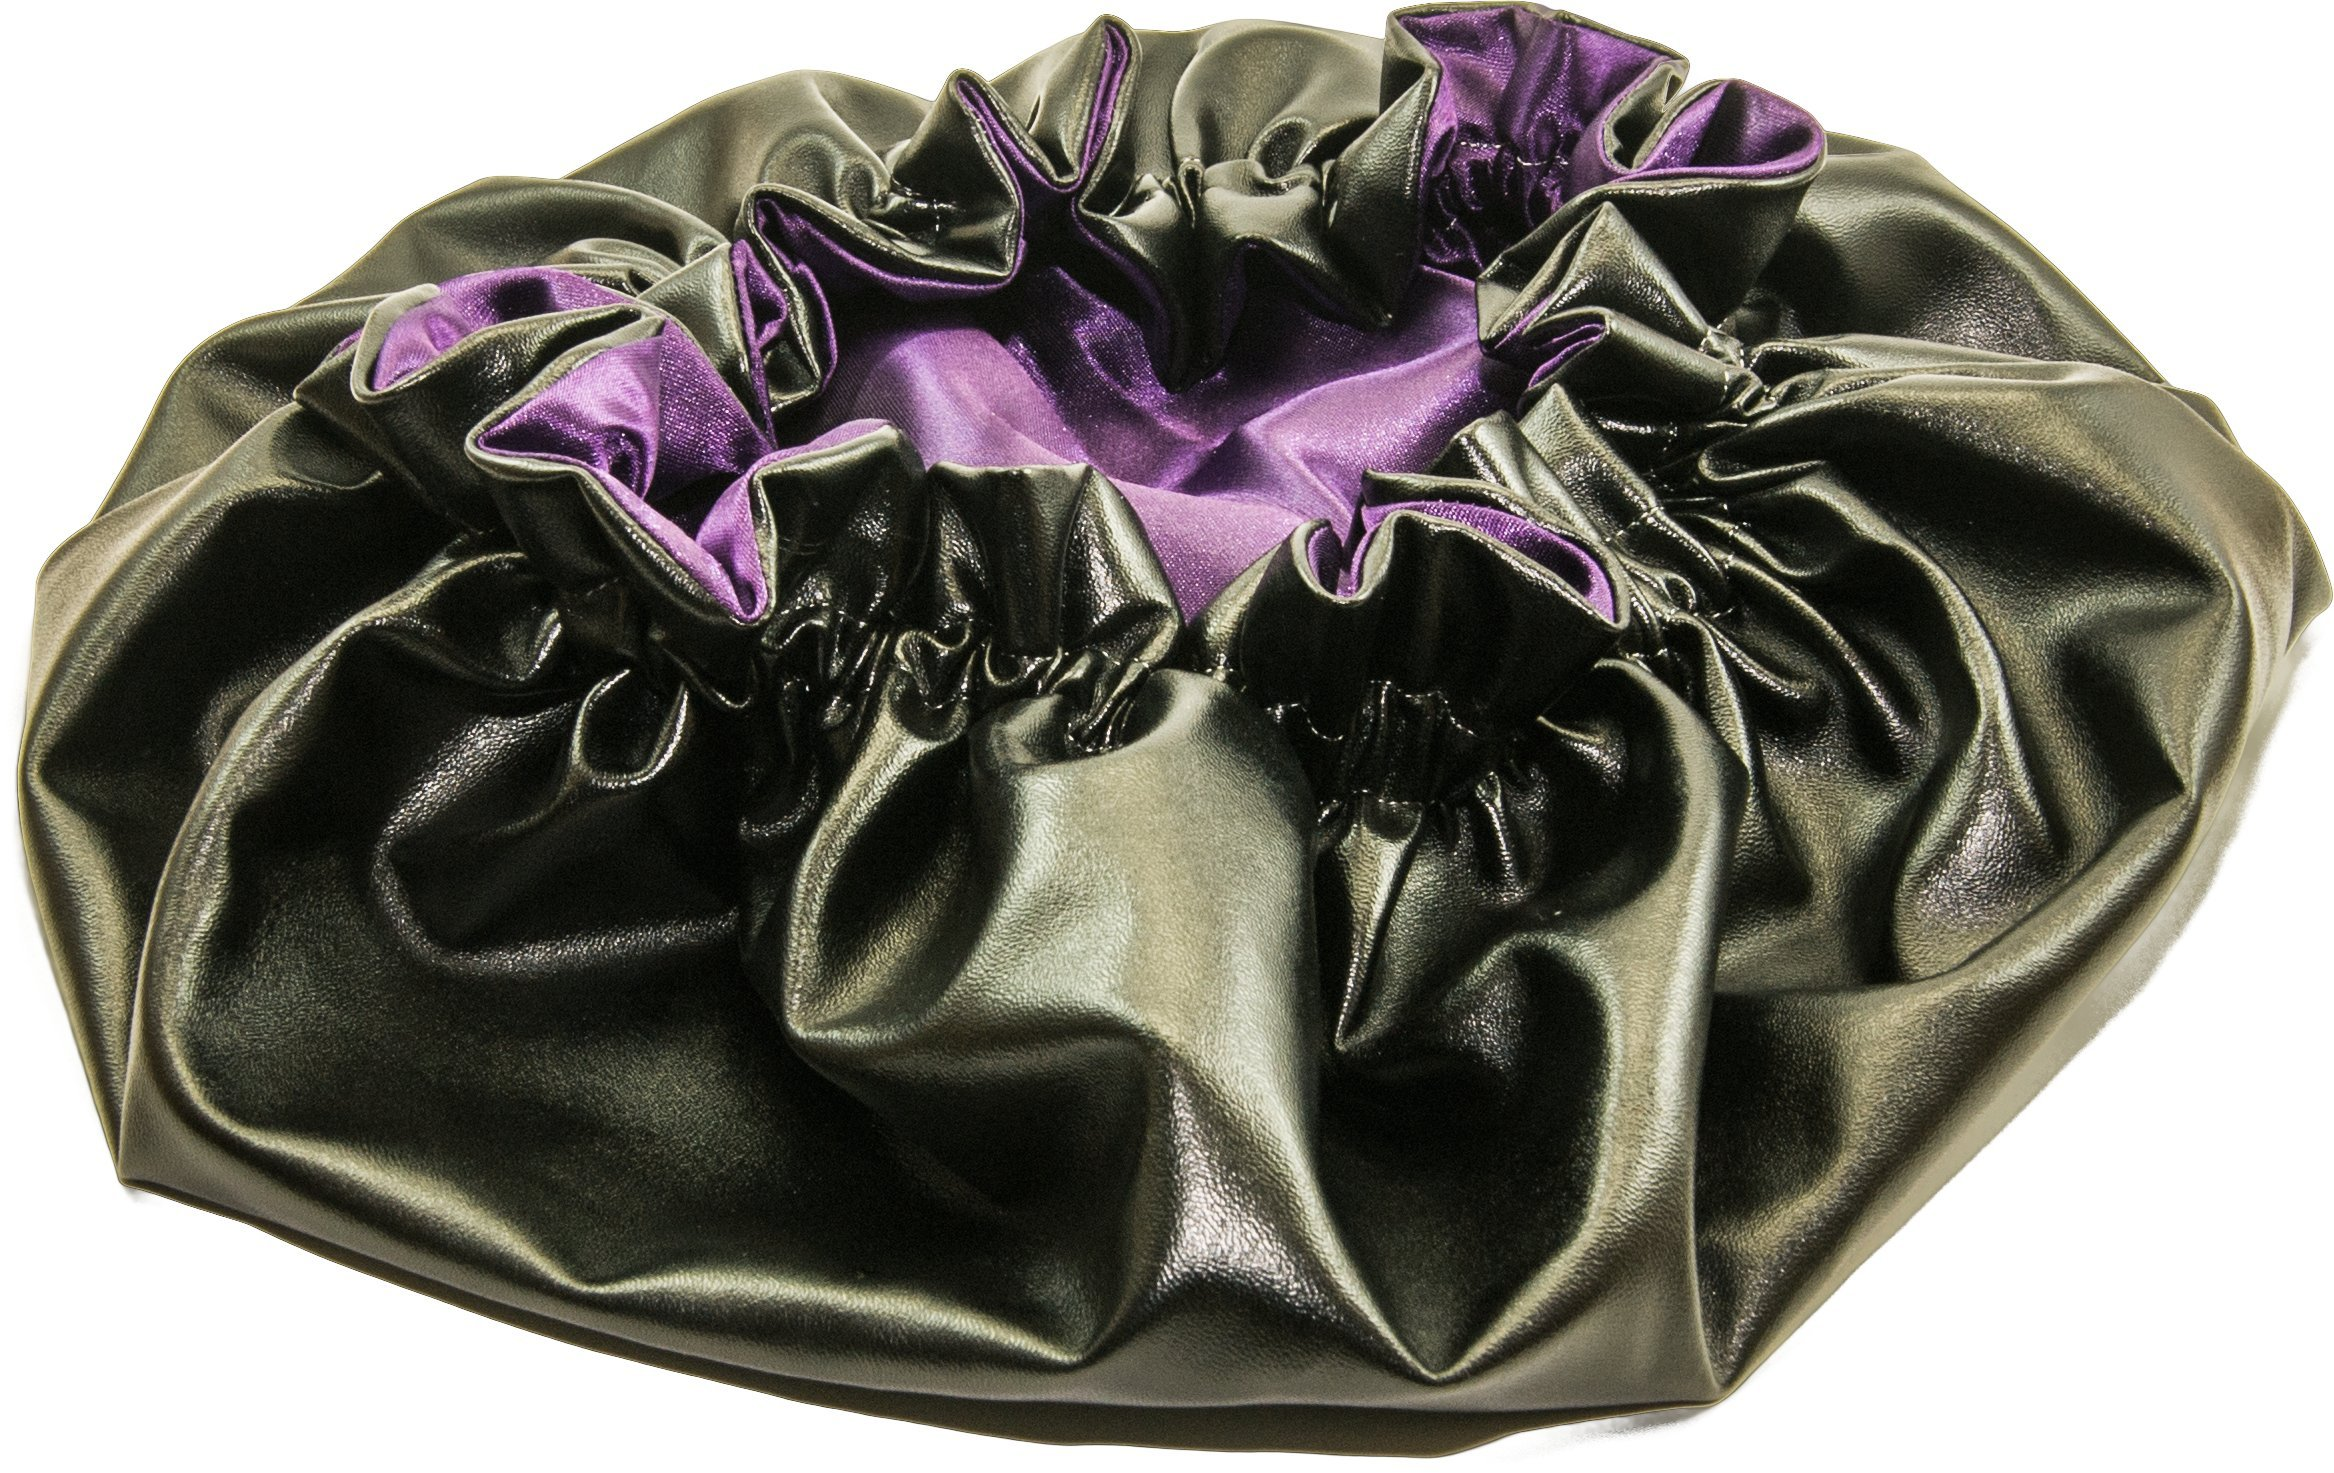 X Large PLUM-Leather & Satin hair bonnet - Shower Cap Large (6 in 1) Leather & Satin hair bonnet - Shower Cap - Self Warming Hot Oil Treatment - Deep Condition - Cold & Flu and GYM BONNET by Unknown